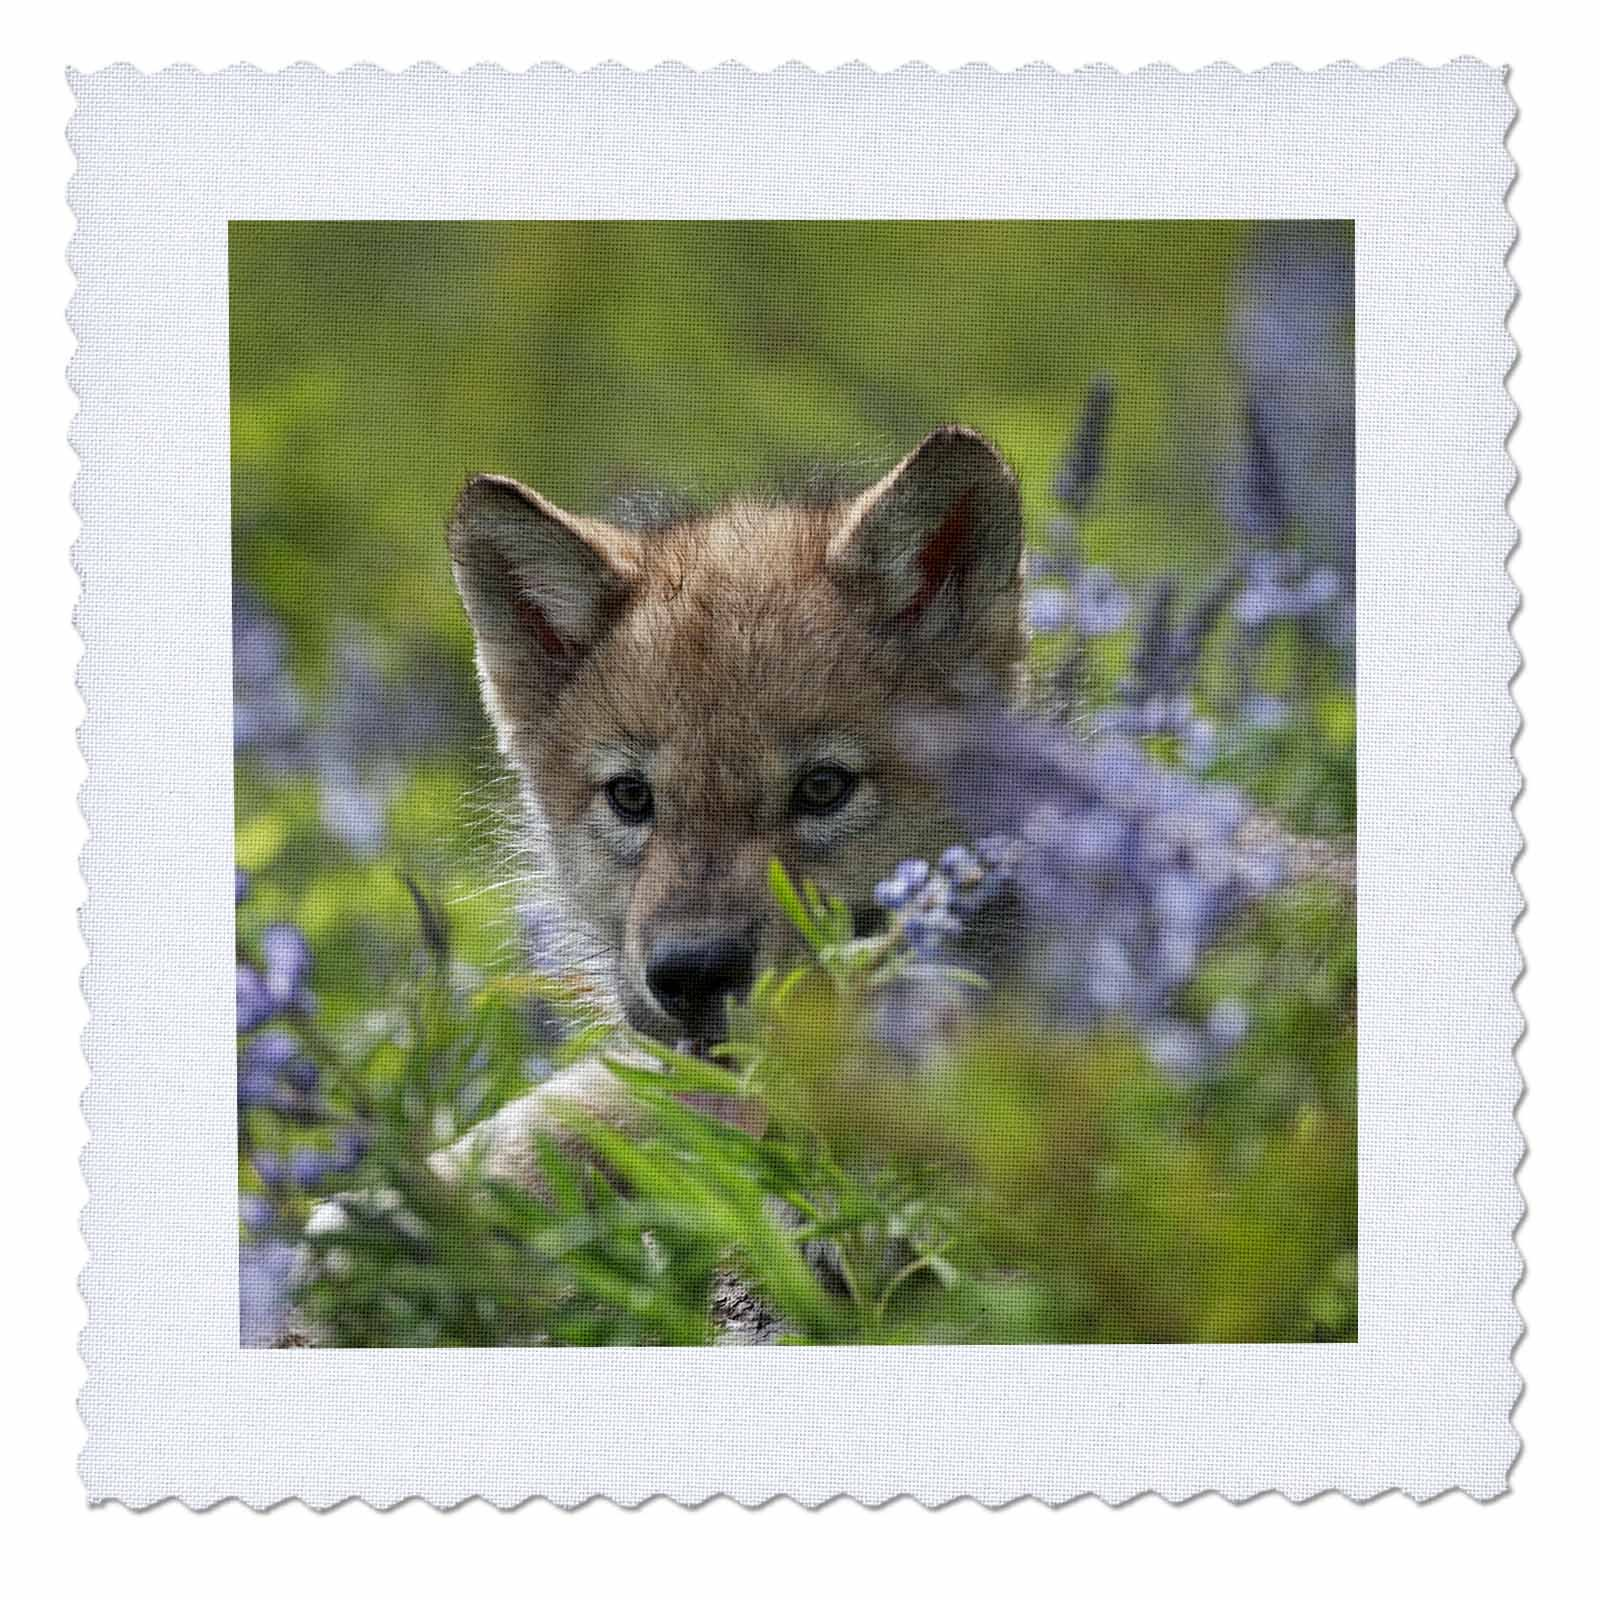 3dRose Danita Delimont - Baby Animals - Gray wolf pup, Canis lupus, hidden in flowers, Montana - 18x18 inch quilt square (qs_259635_7)